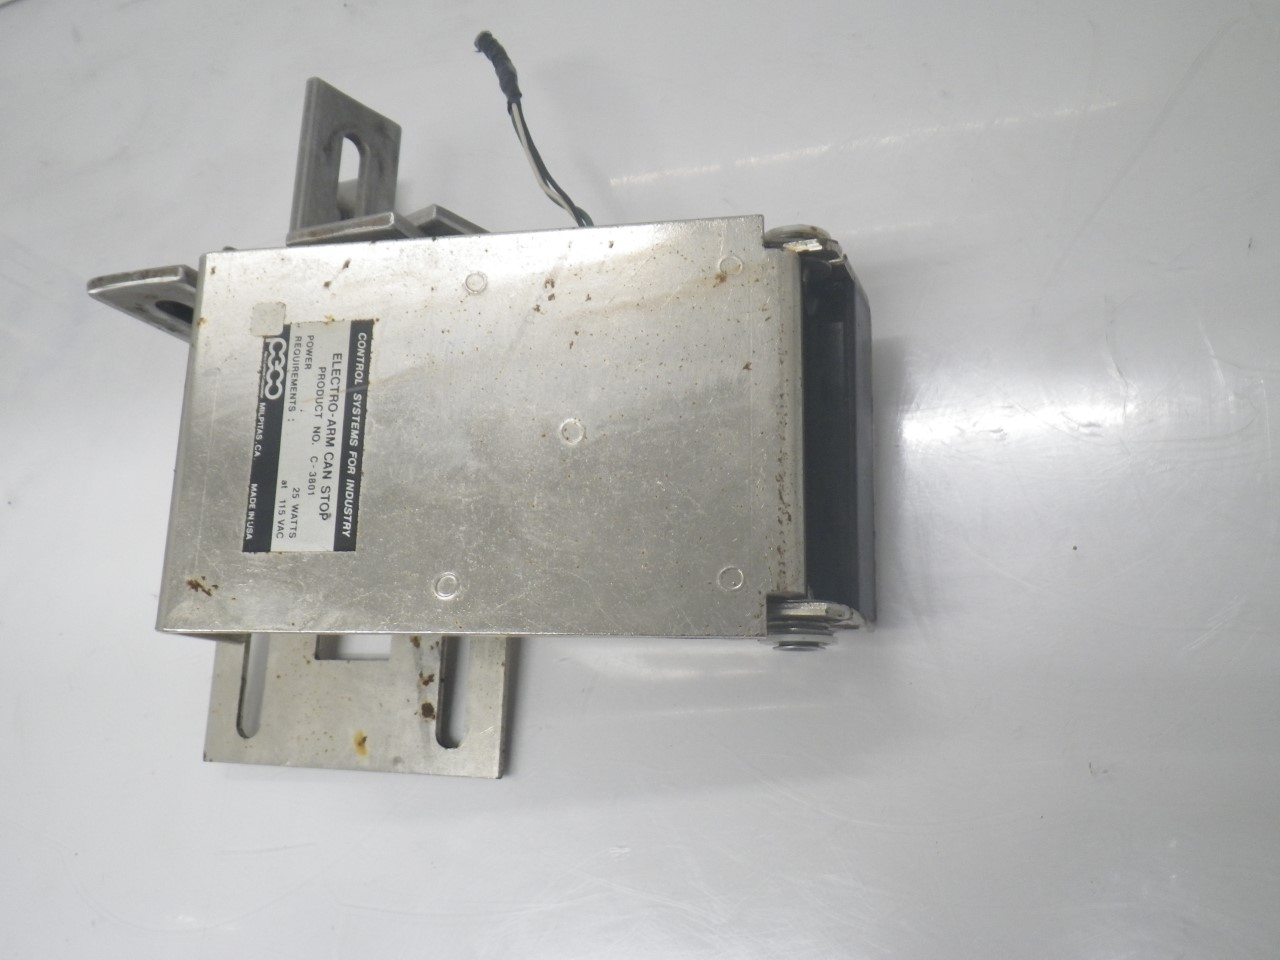 IMGP6937C-3801 C-3800A 3012Peco Electro-arm Controls forPackage Inspection(Used Tested) (5)